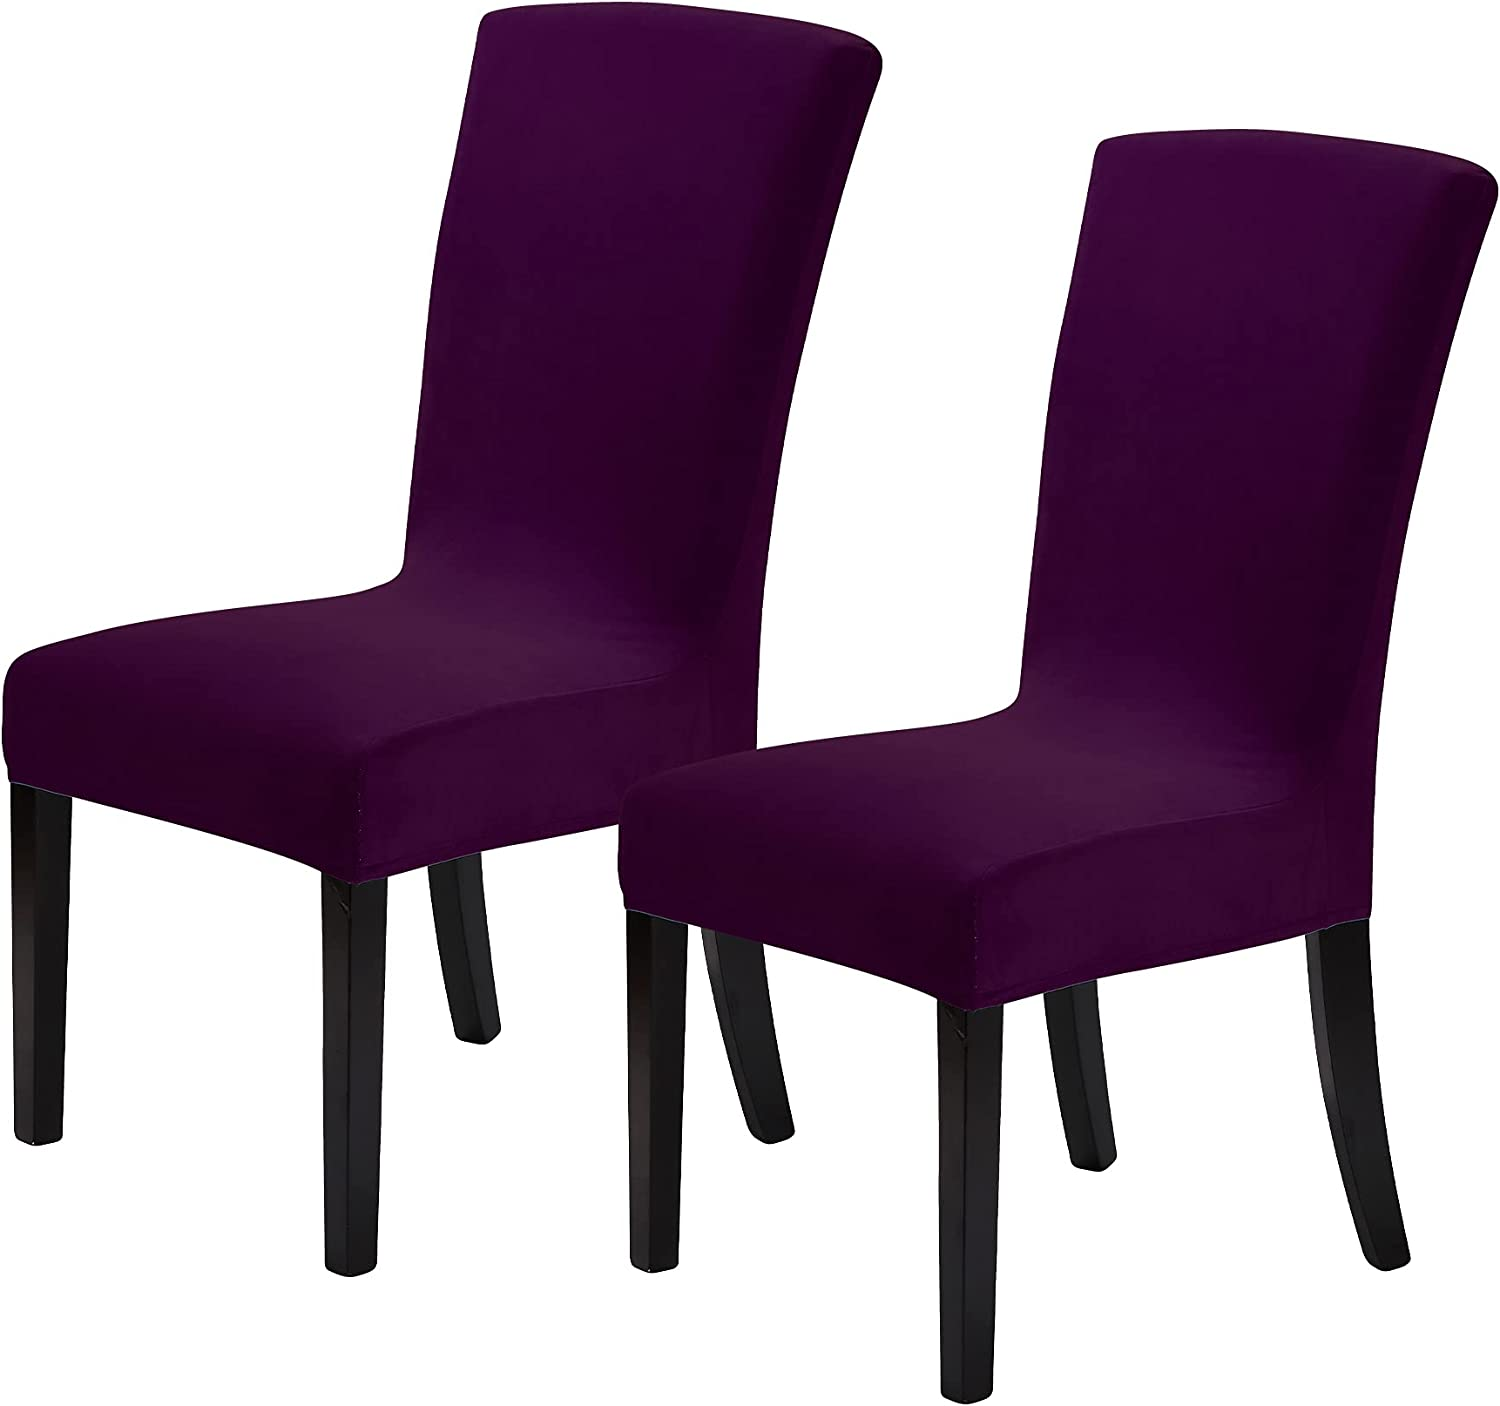 Howhic Velvet Chair Covers for Dining Room Set of 2, Stretchy Dining Chair Covers, Washable Kitchen Chair Slipcovers, Classy Decor for Home and Banquet (Eggplant, 2 Pack)